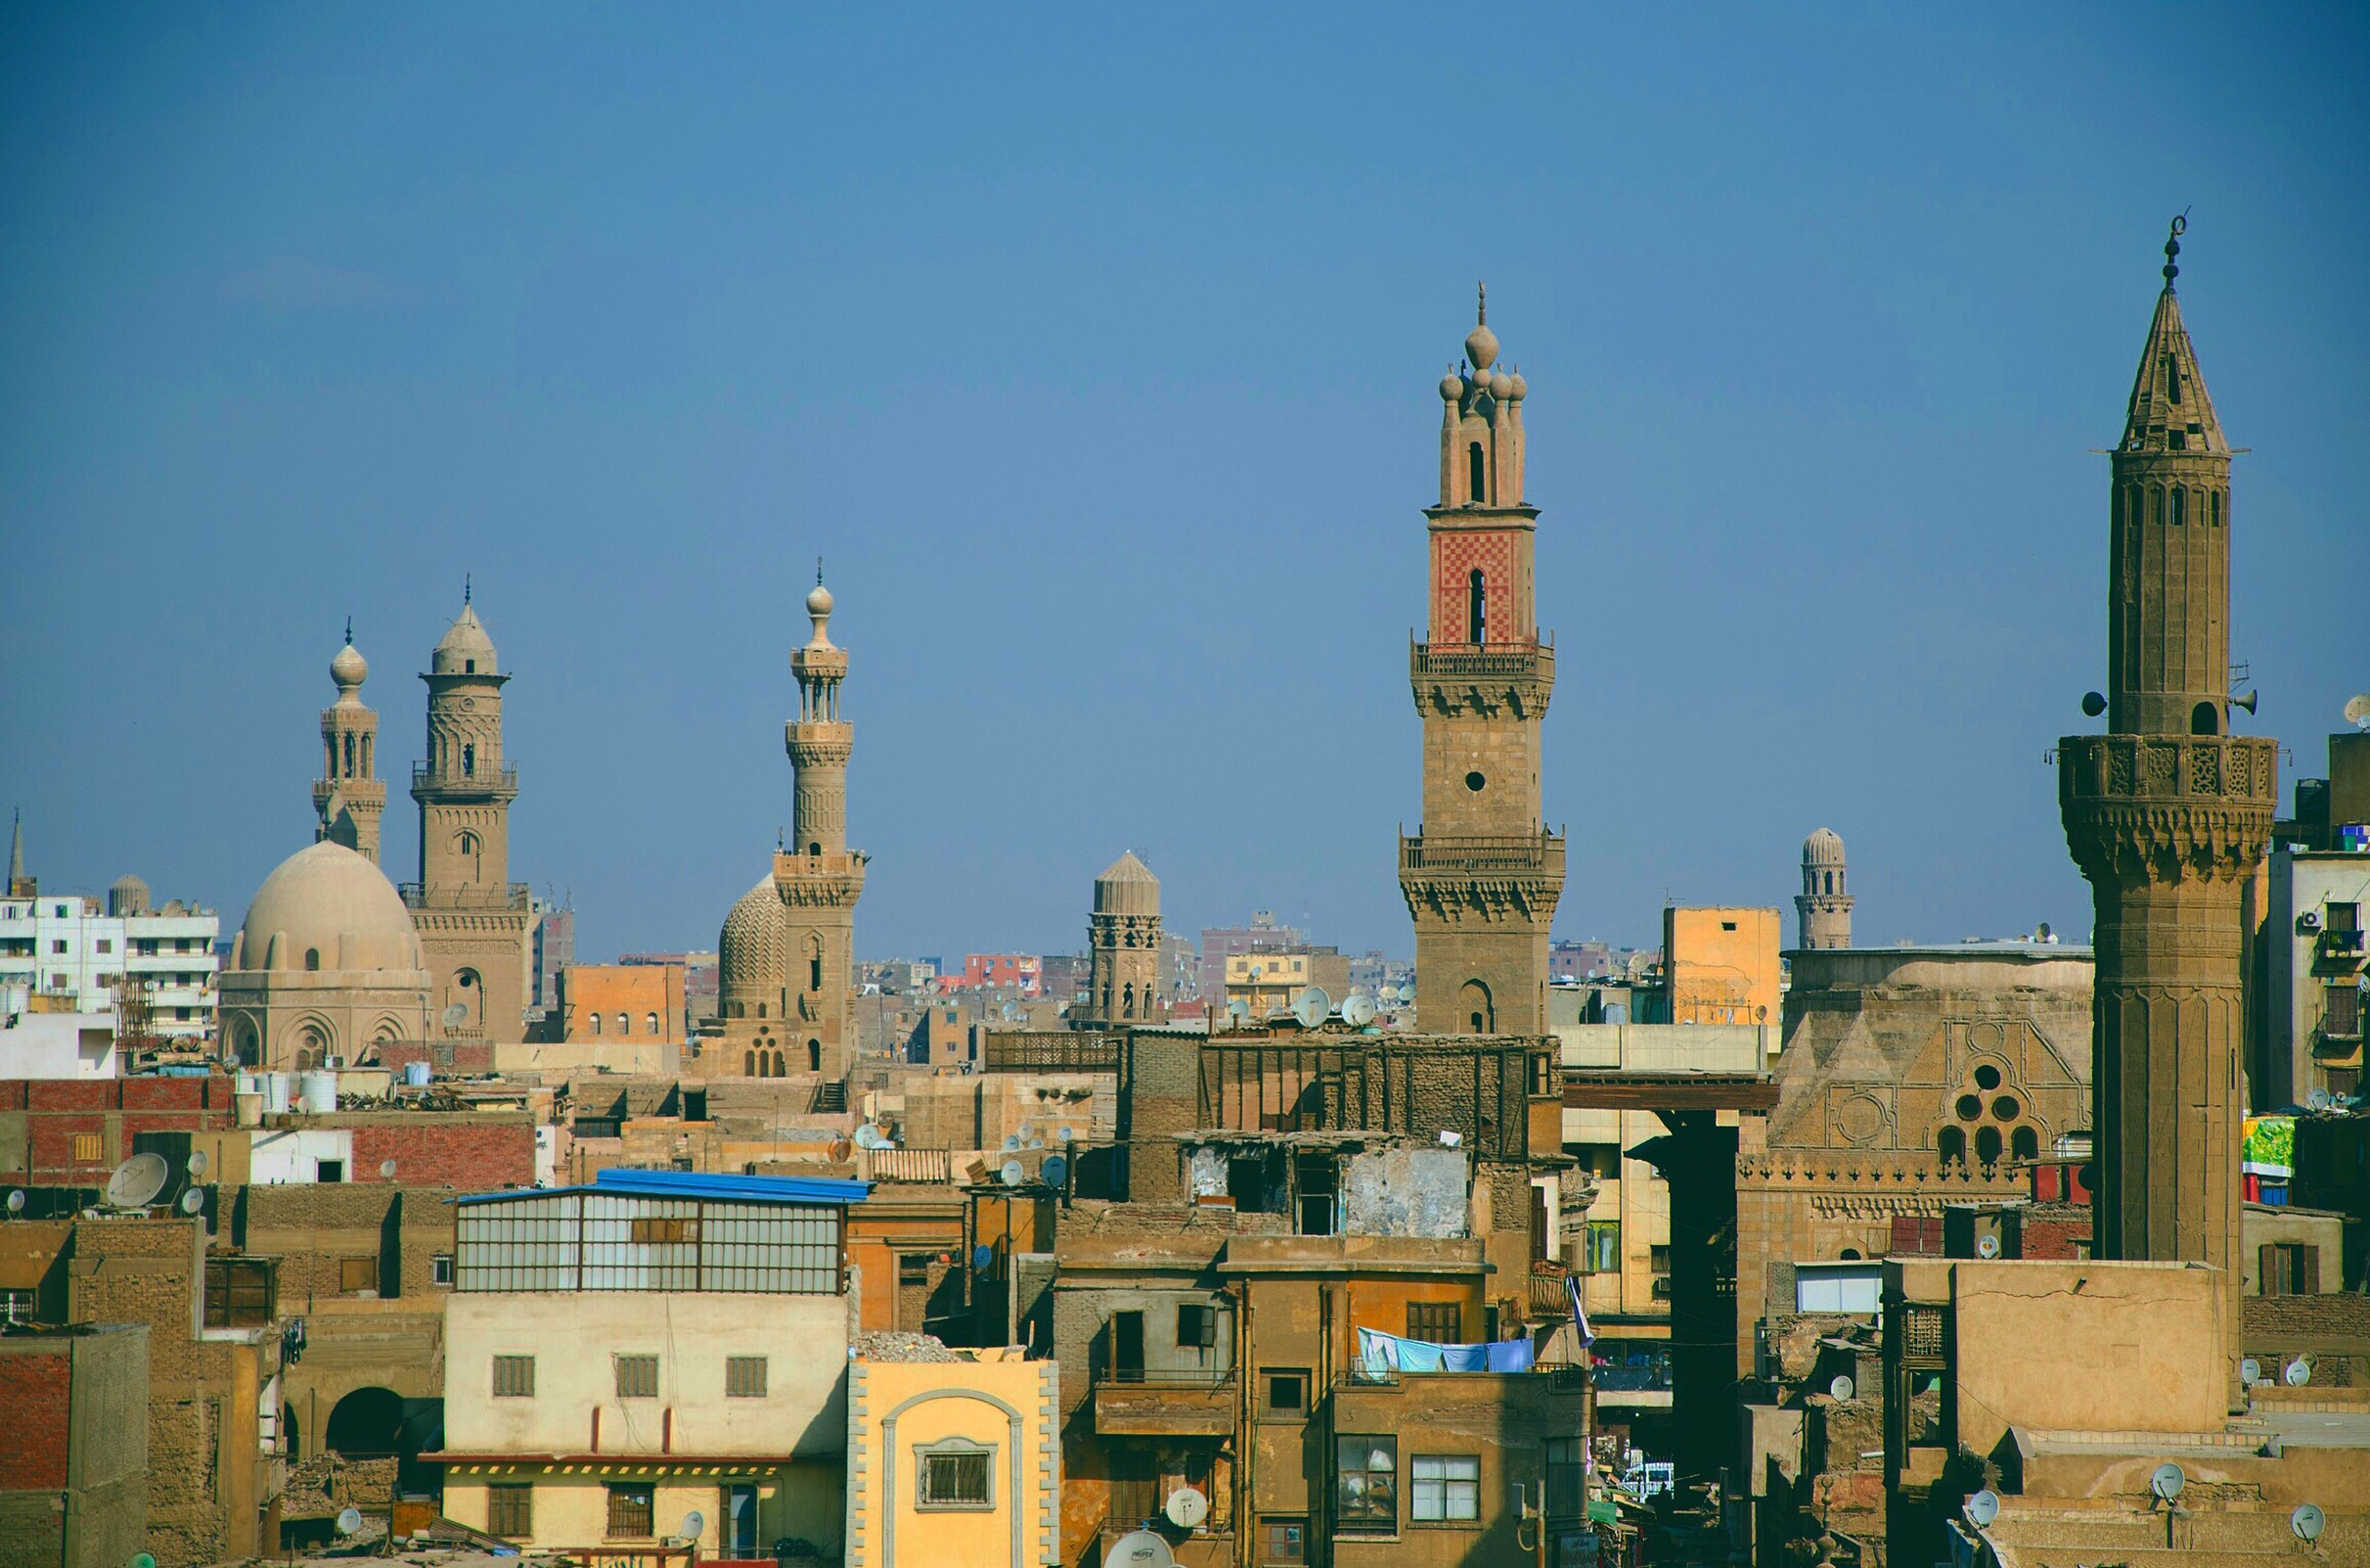 Patterns Check This Out Showcase March Home Egypt Thisisegypt Old Islamic Architecture Vintage Colors Cairo VSCO Vscocam Minaret Mosque